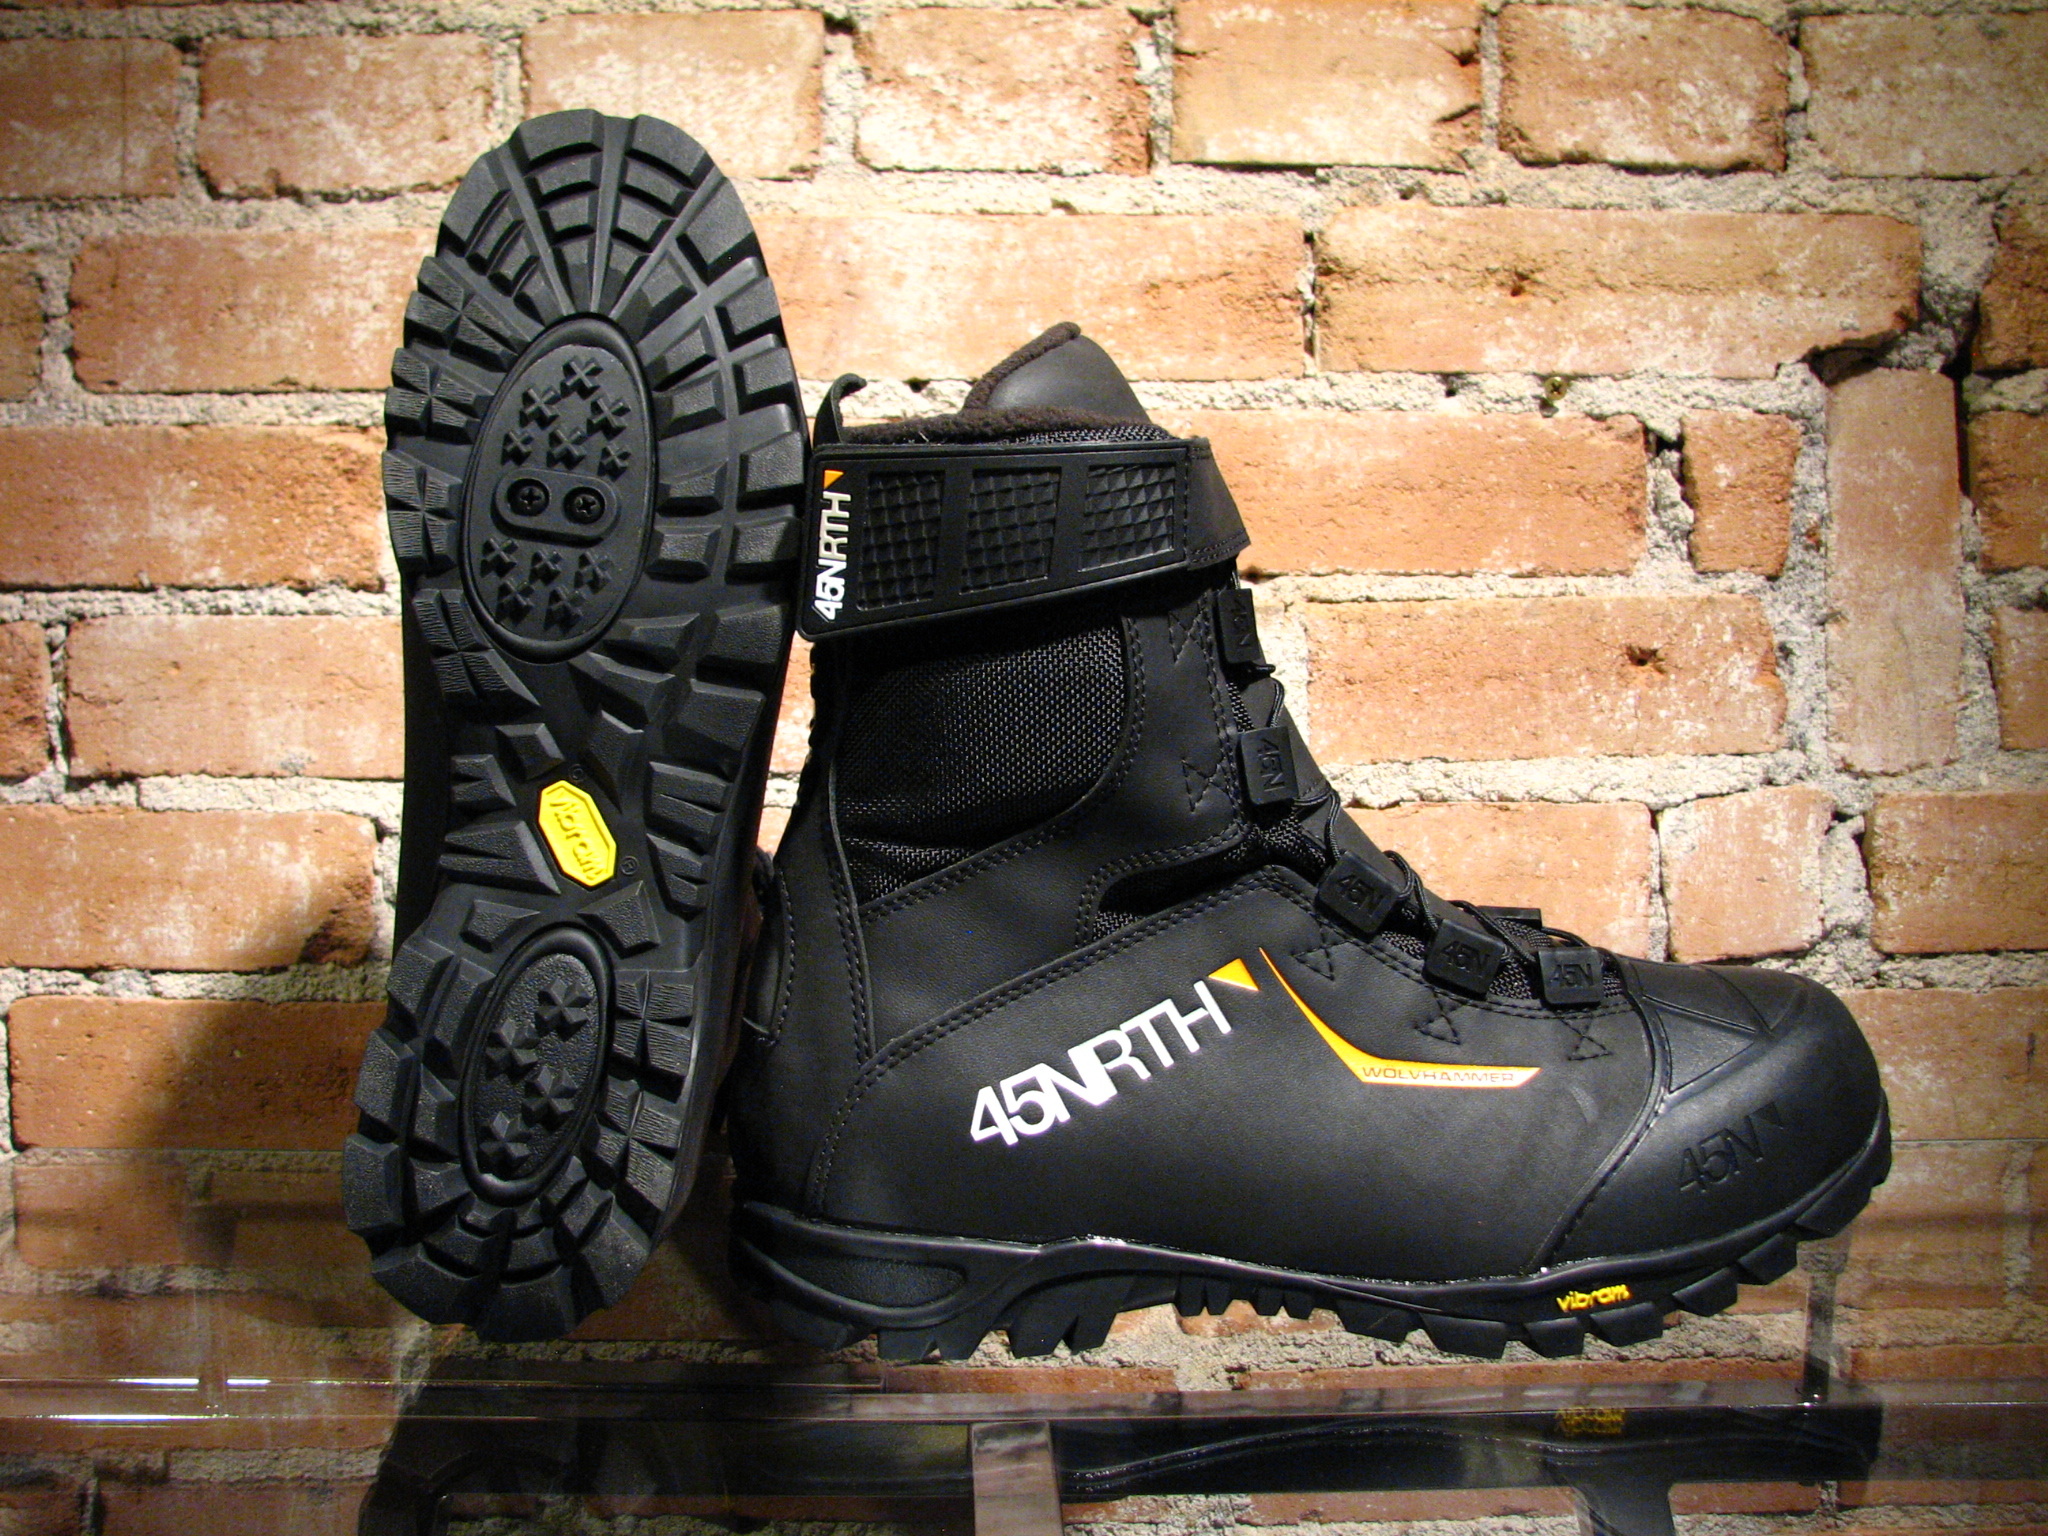 45NRTH doesn't mess around when it comes to winter footwear. The Wolvhammer delivers.